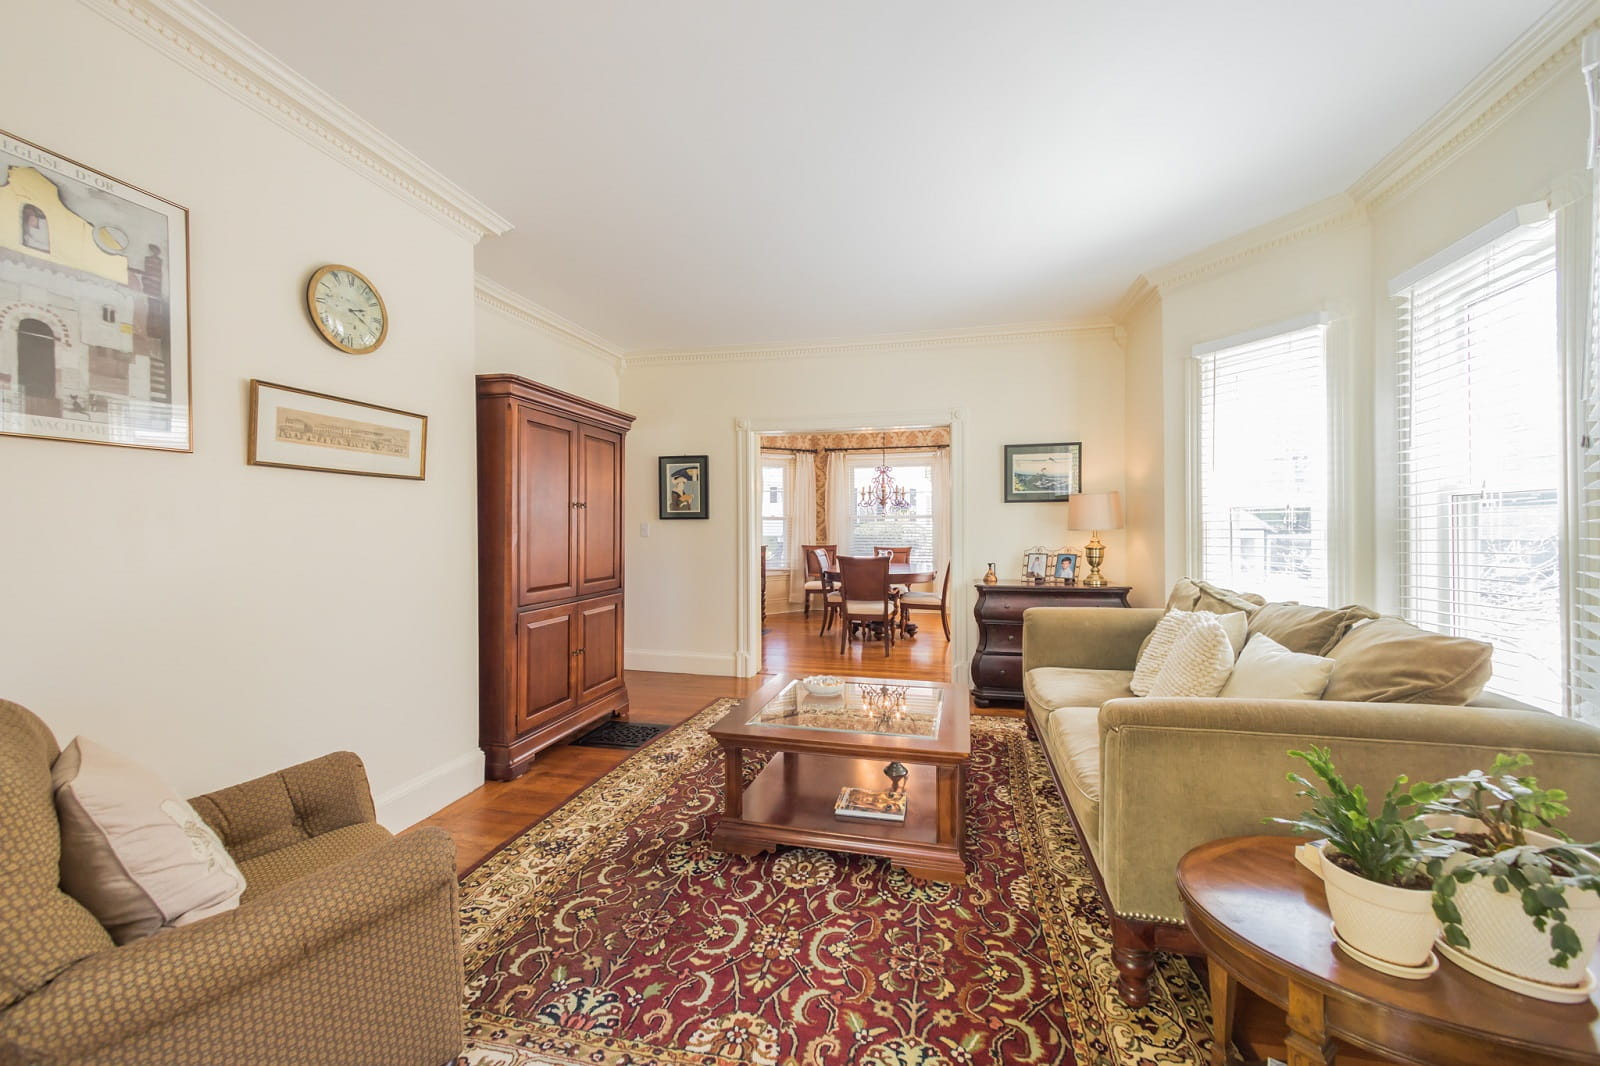 Real Estate Photography in Boston - MA - USA - Living Area View